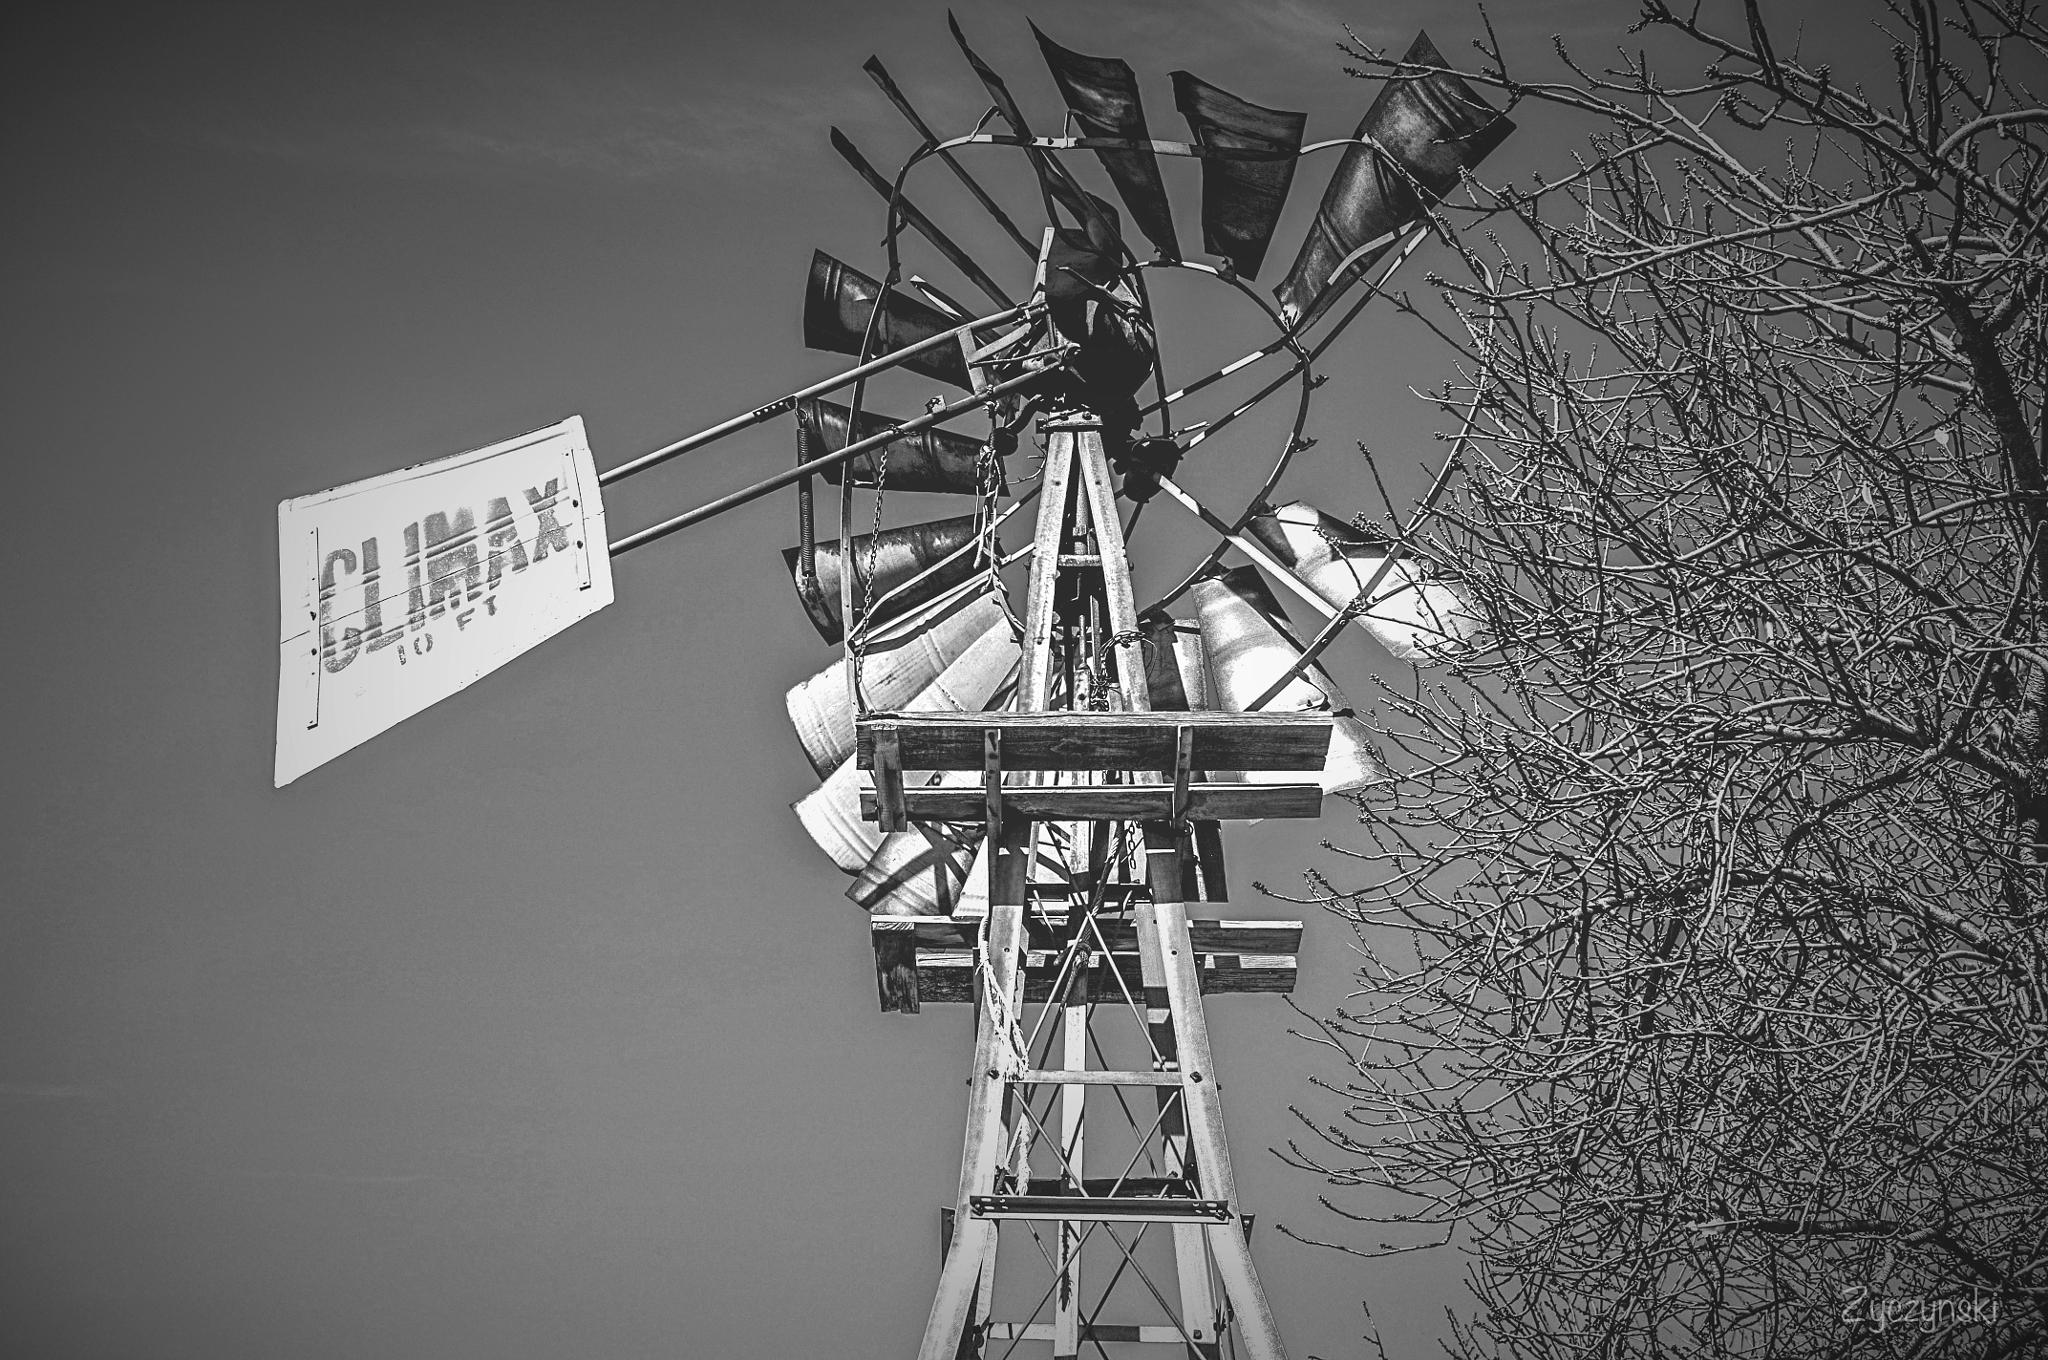 'Retired Water Wind Pump' by Nick Thomas